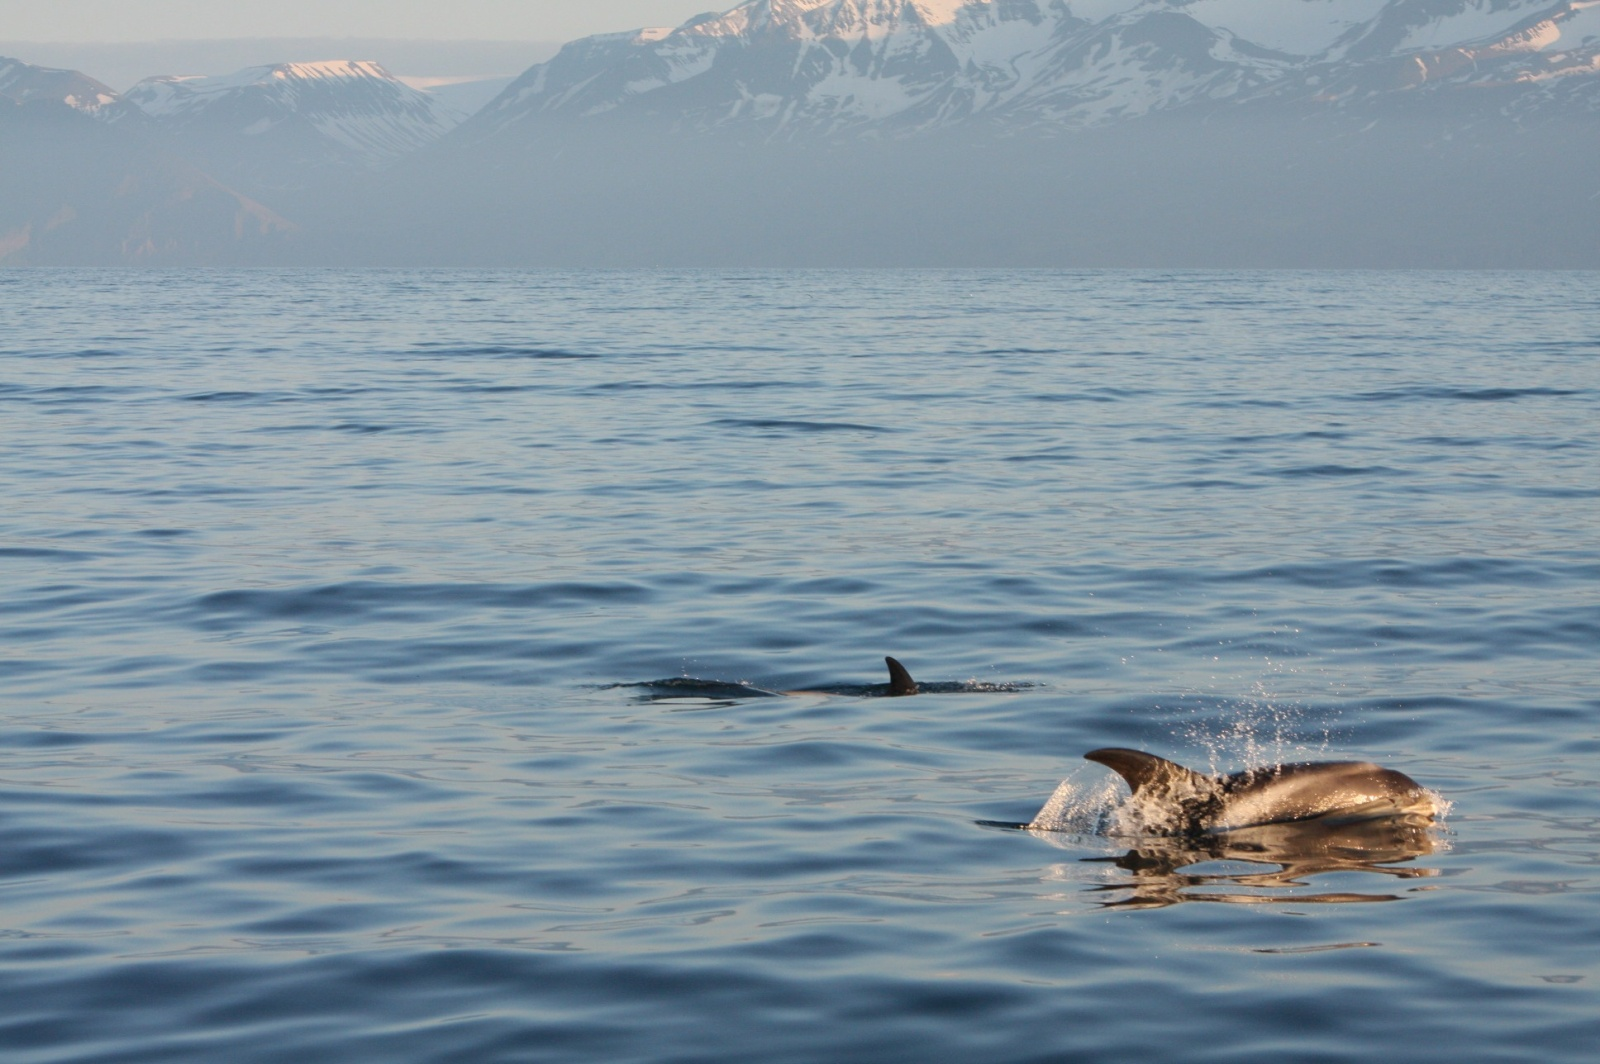 Arctic dolphins are more friendly than blue whales